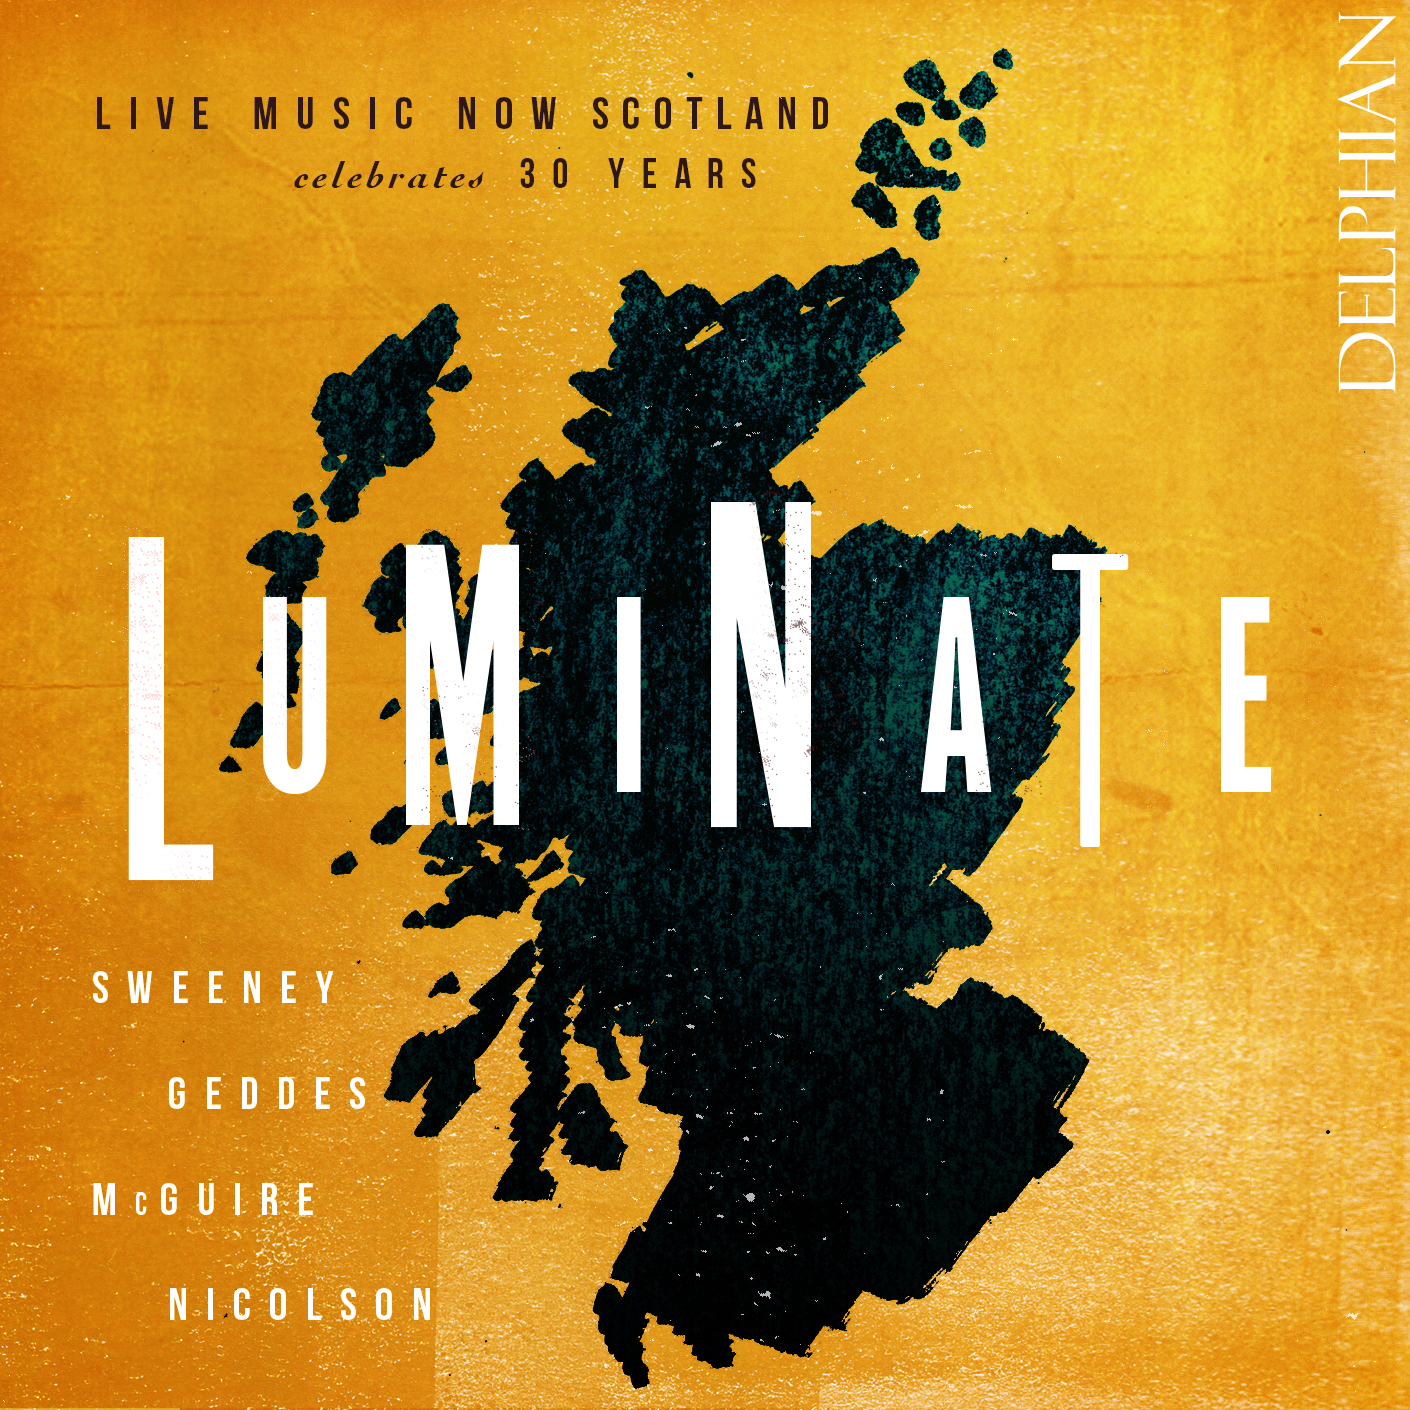 If it wasn't for their wellies - Luminate